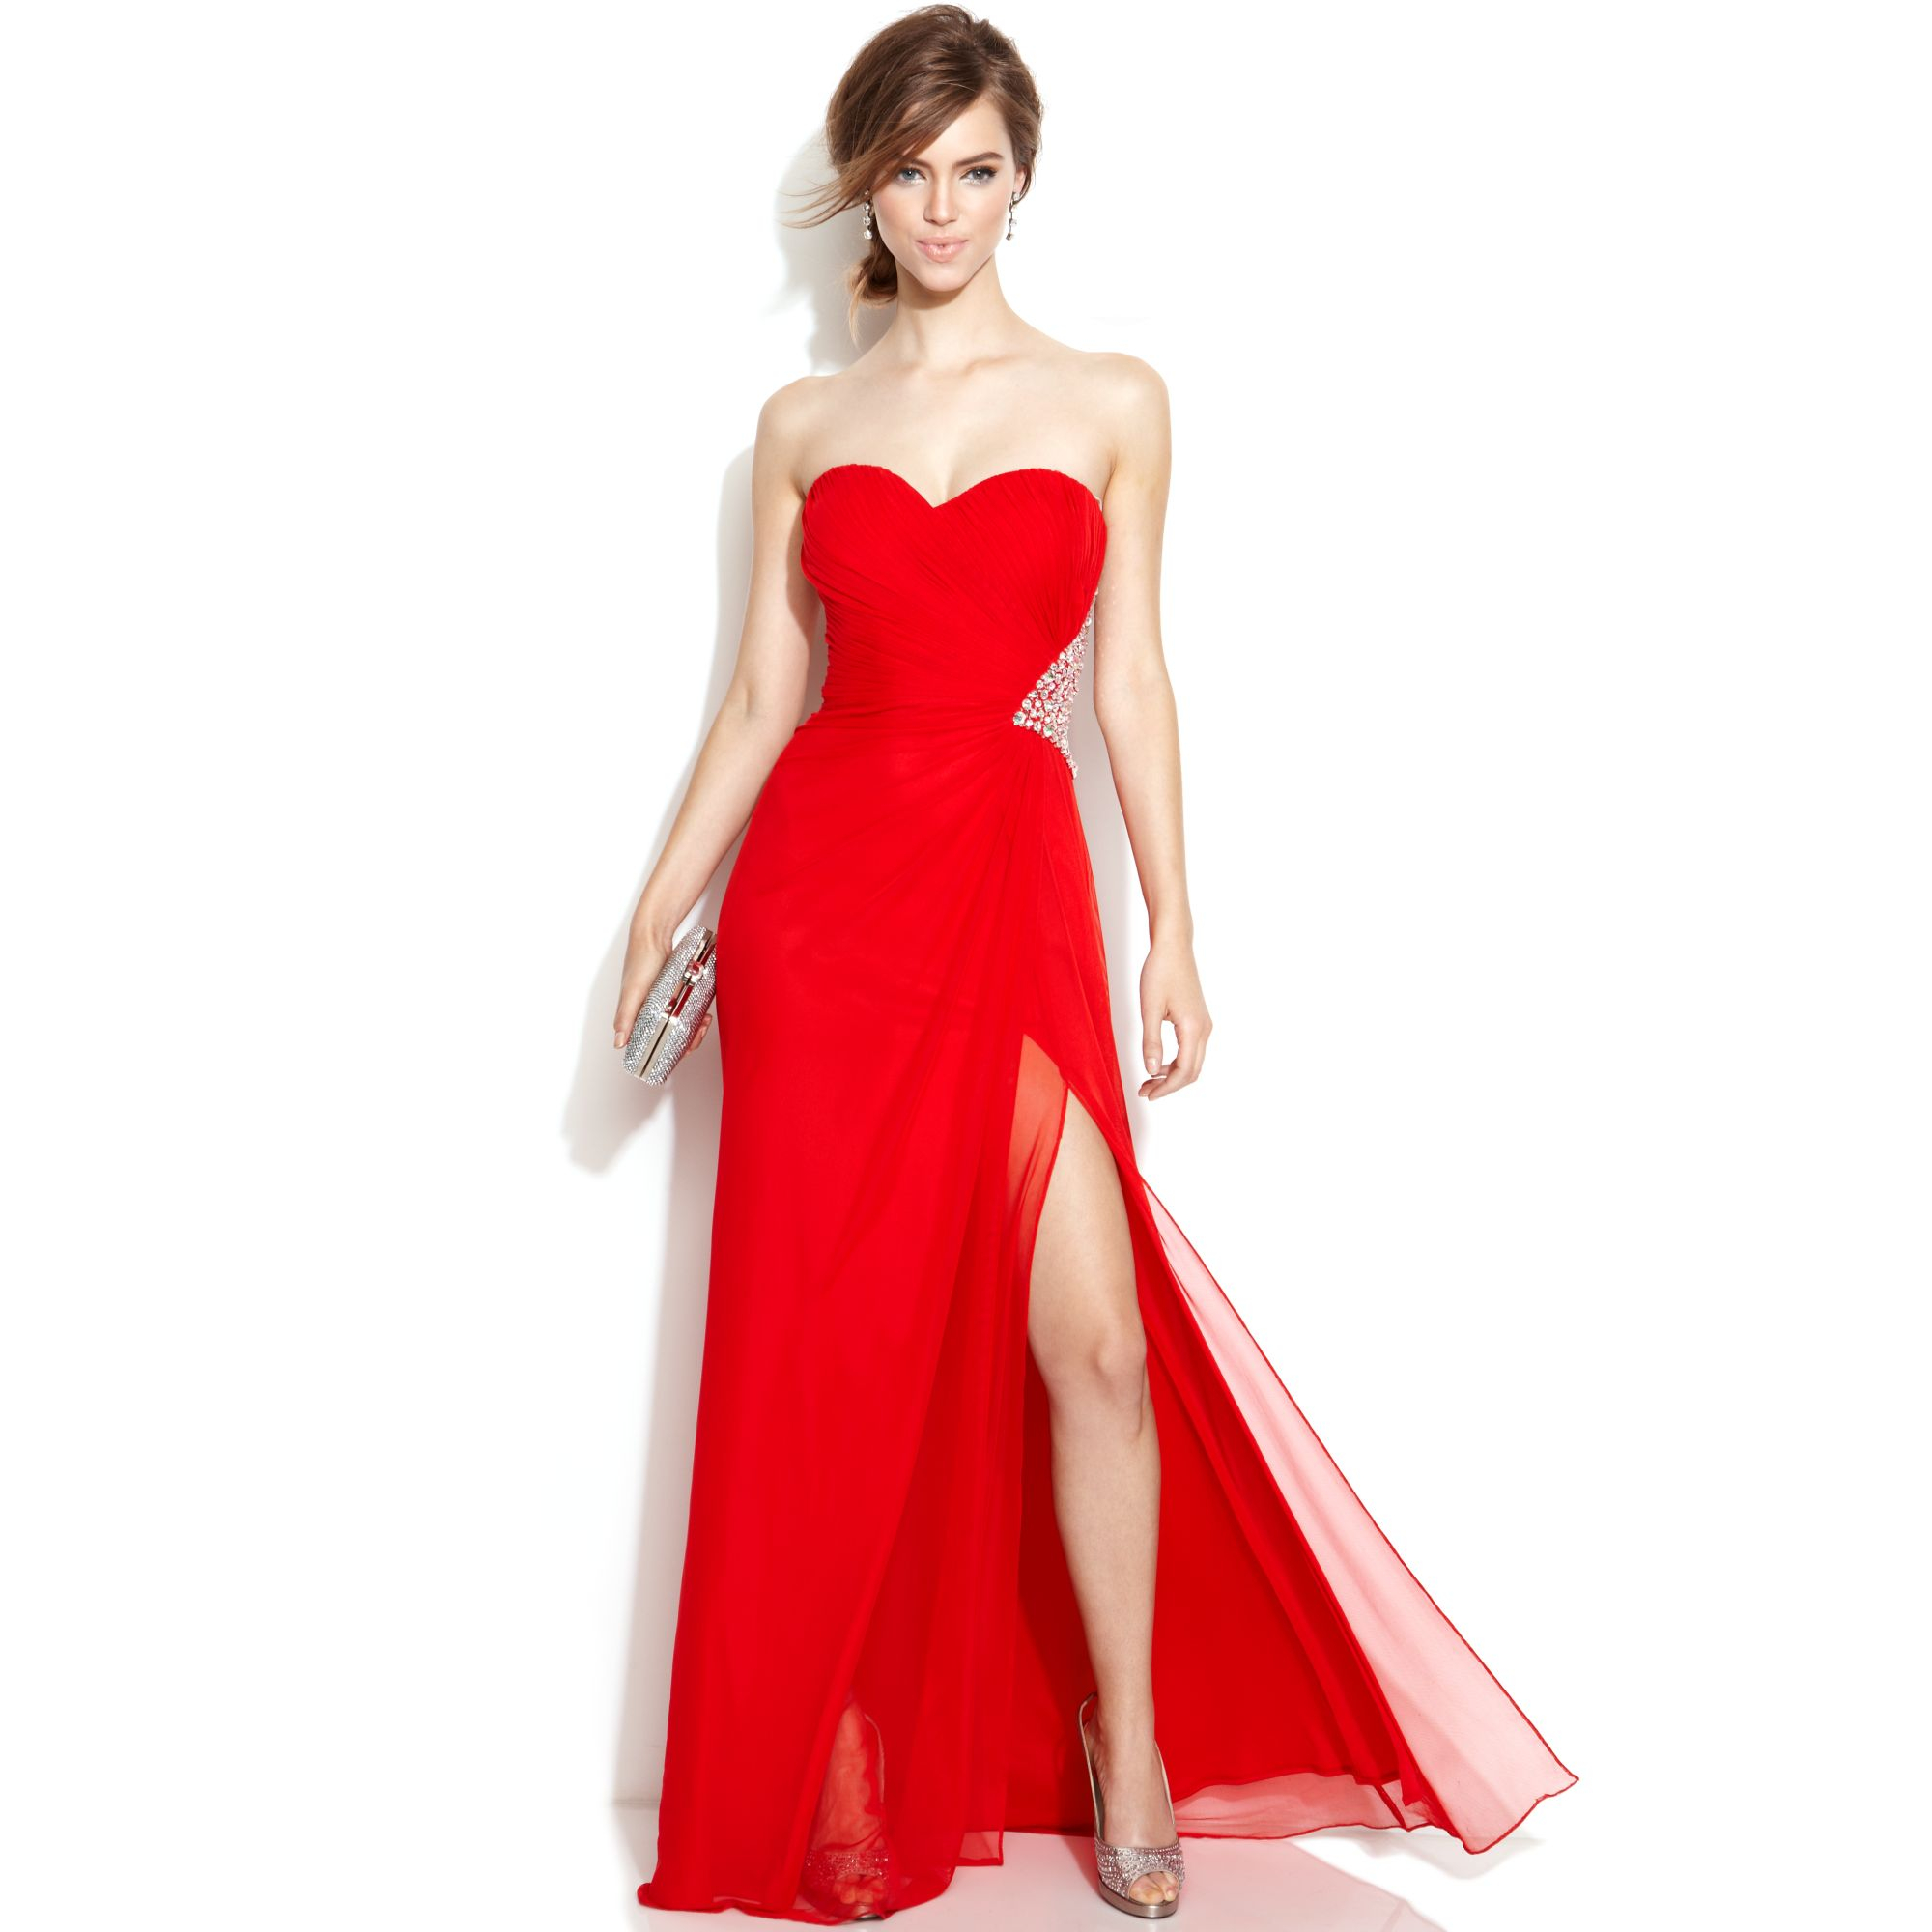 Homecoming Dresses Sale Macy&39S - Holiday Dresses